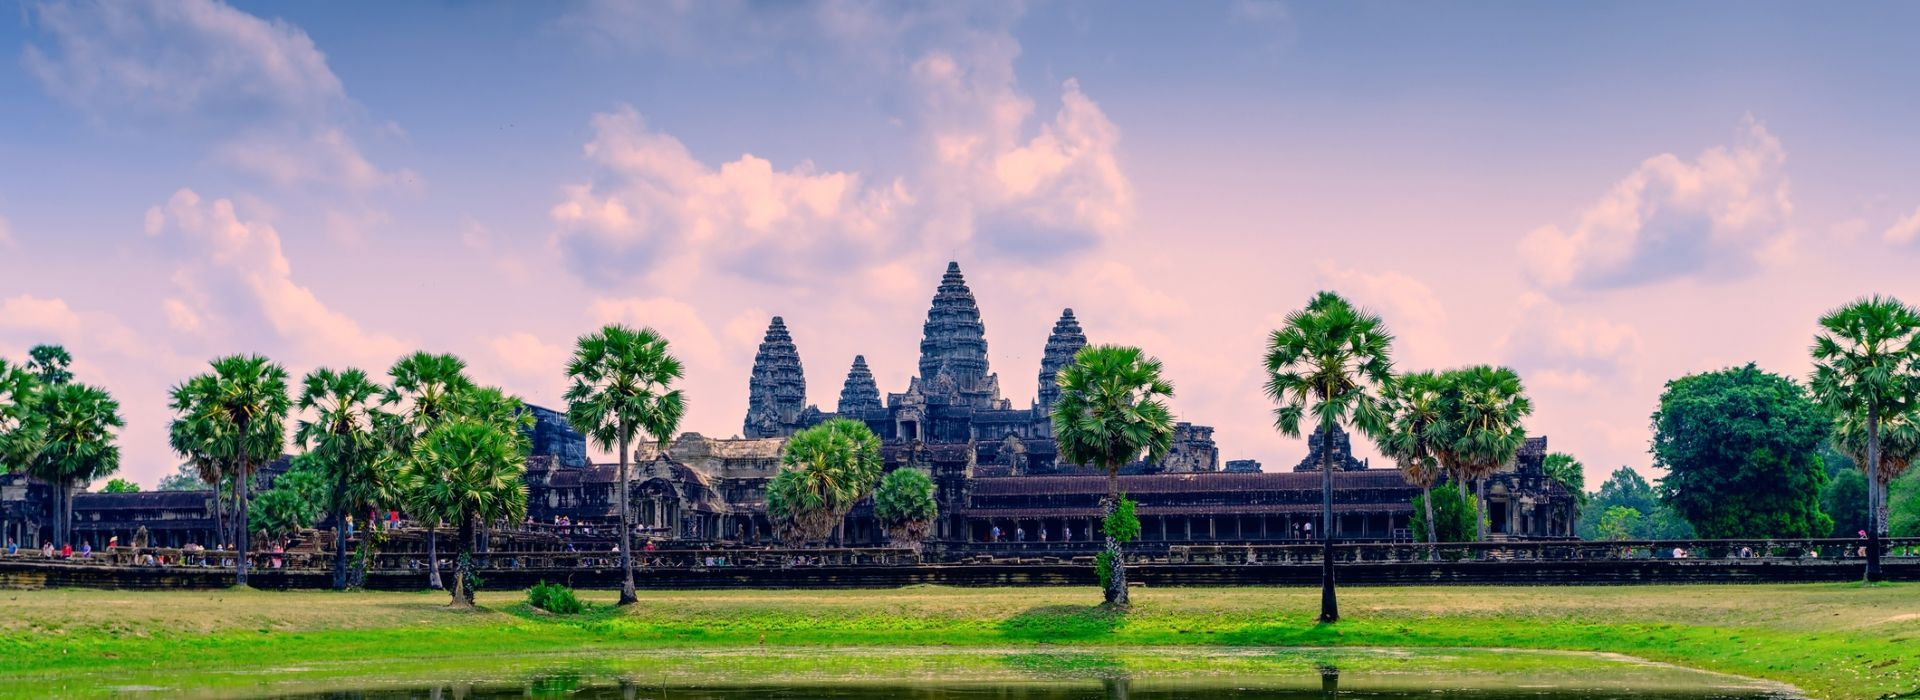 Sightseeing Tours in Phnom Penh